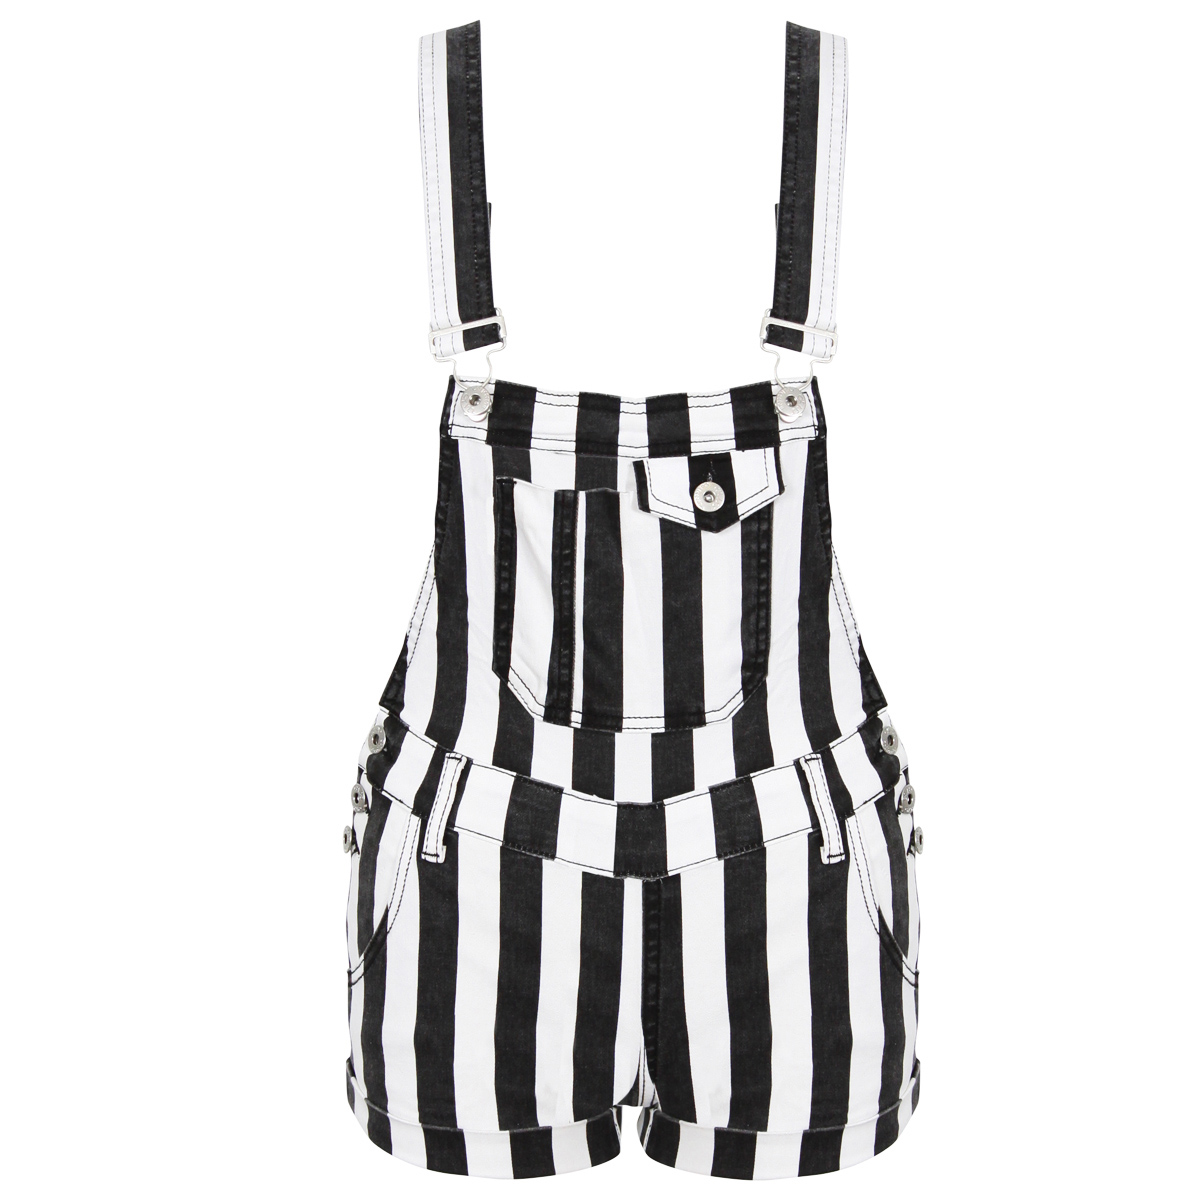 NEW WOMENS BLACK WHITE STRIPE DENIM DUNGAREE PLAYSUIT LADIES SHORTS 6 8 10 12 14 Preview